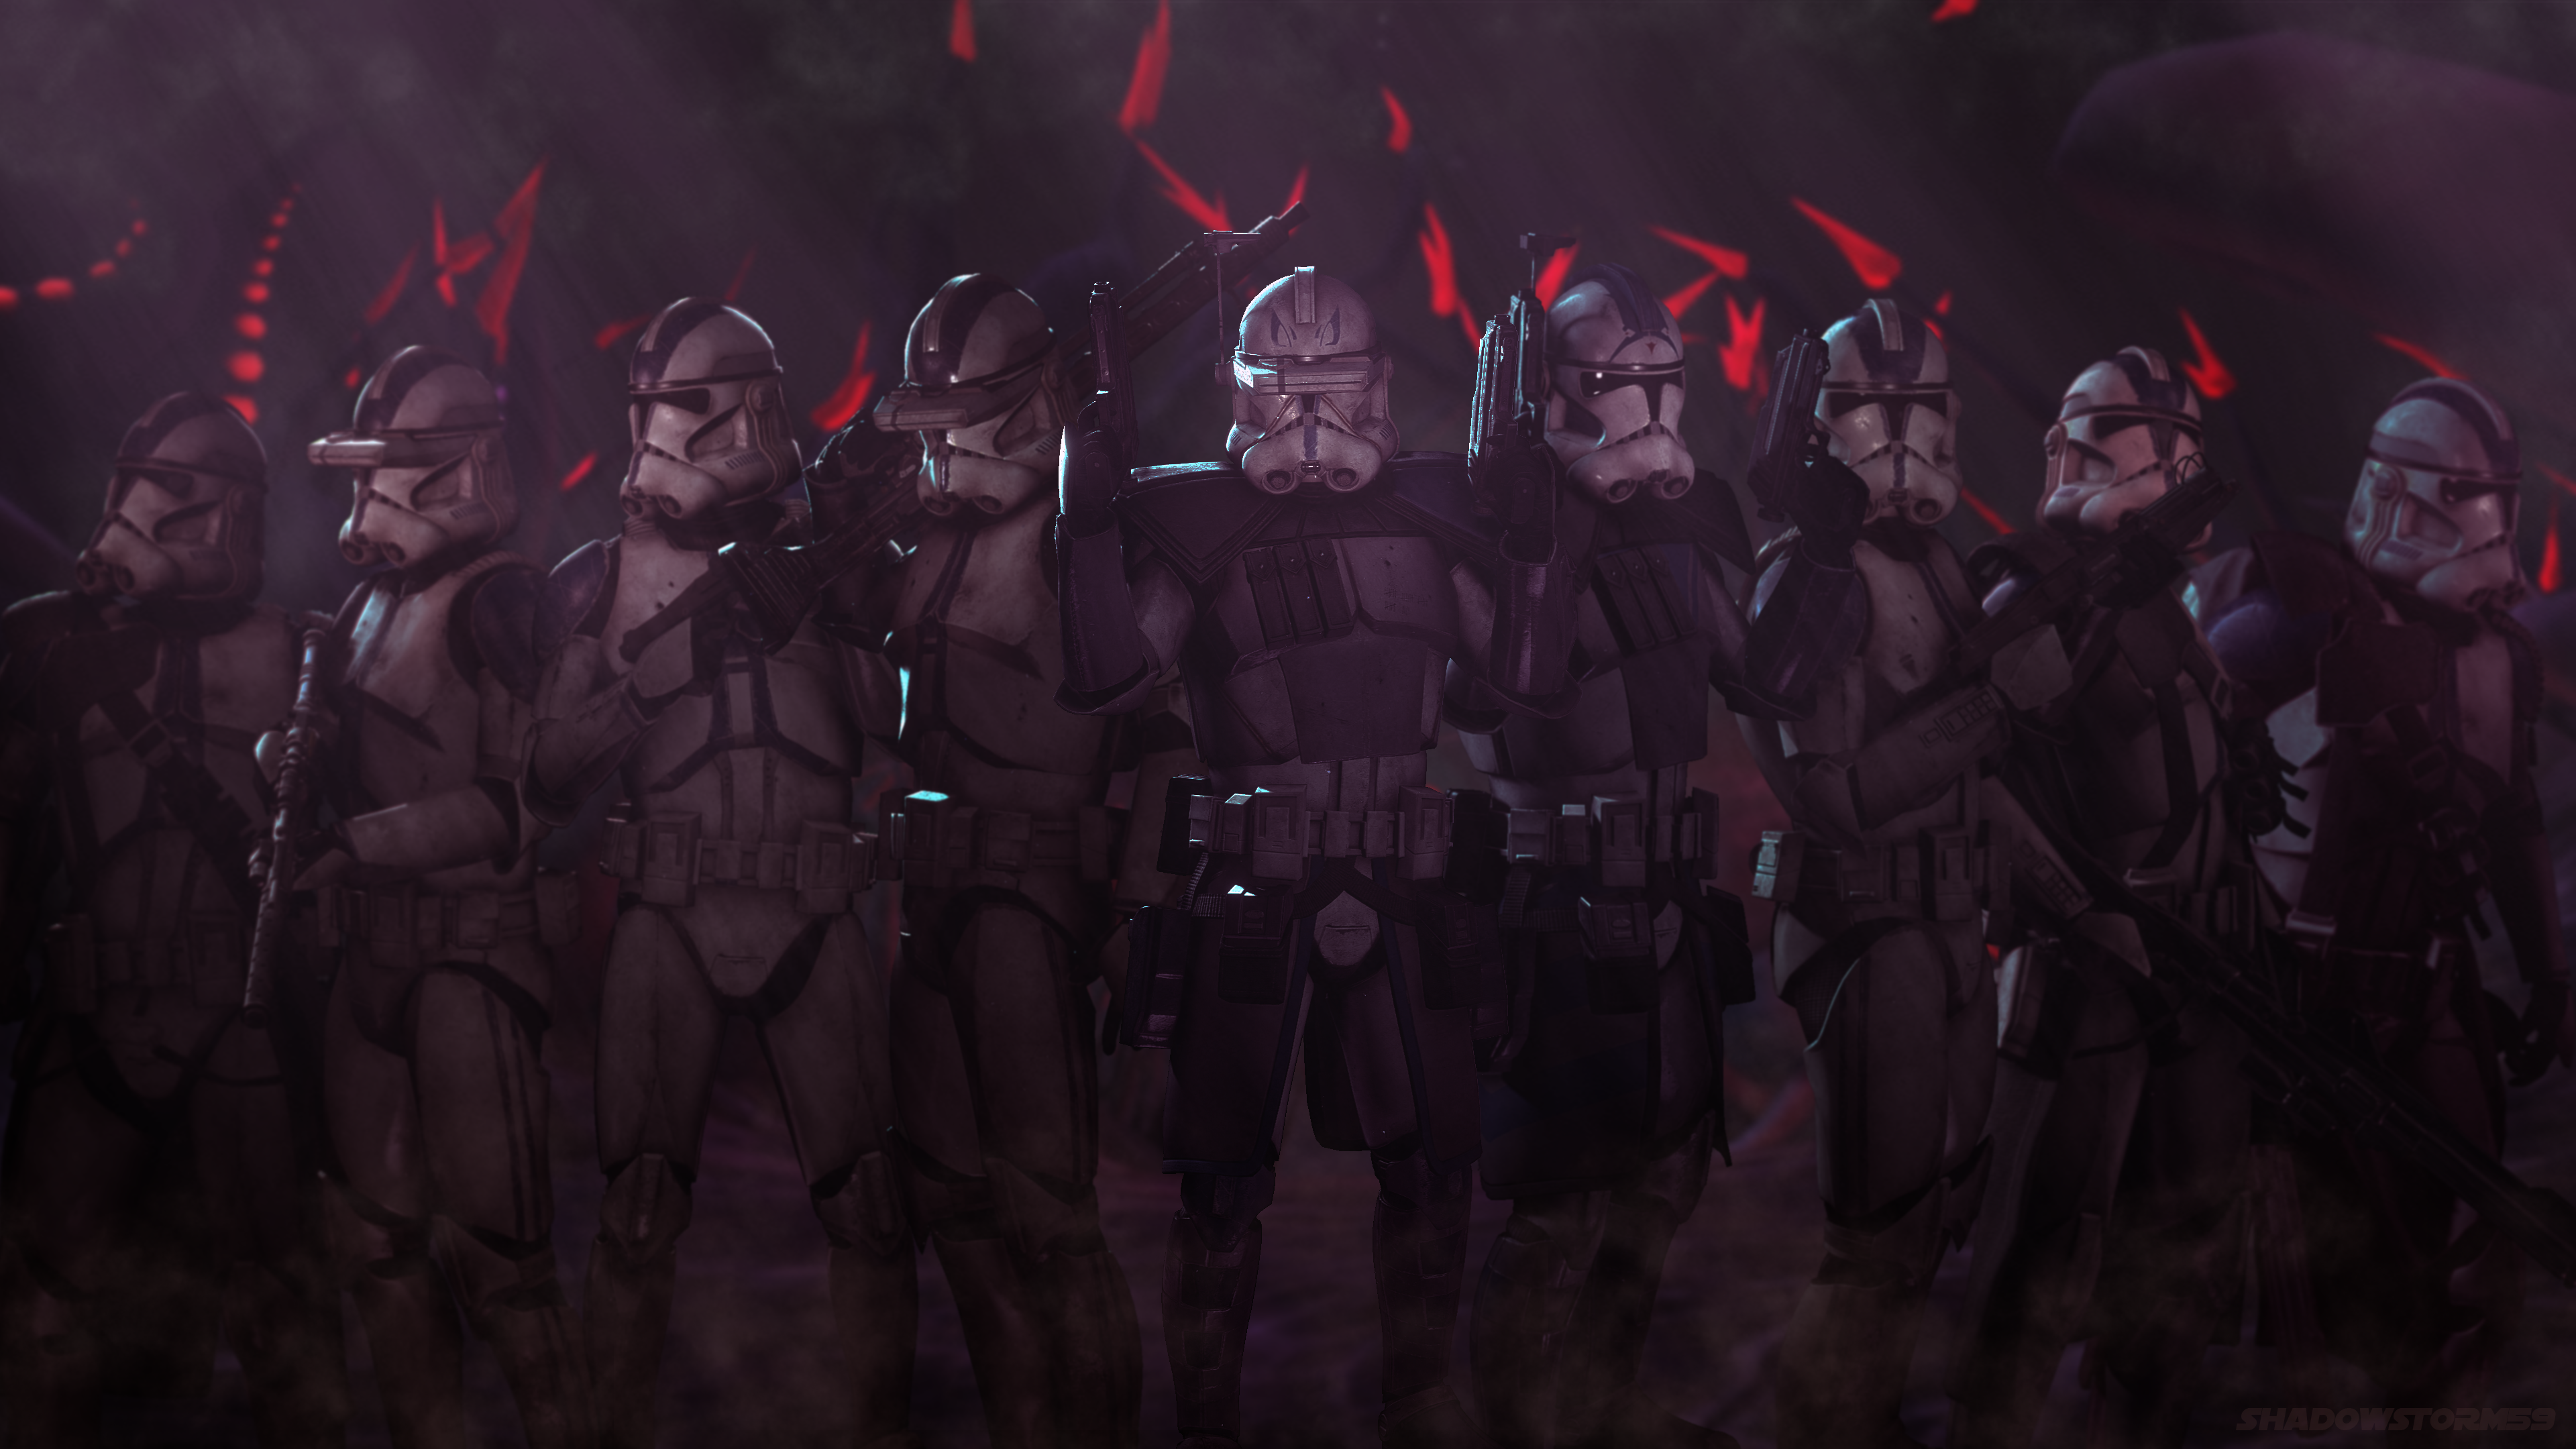 501st Clone Trooper Wallpapers Top Free 501st Clone